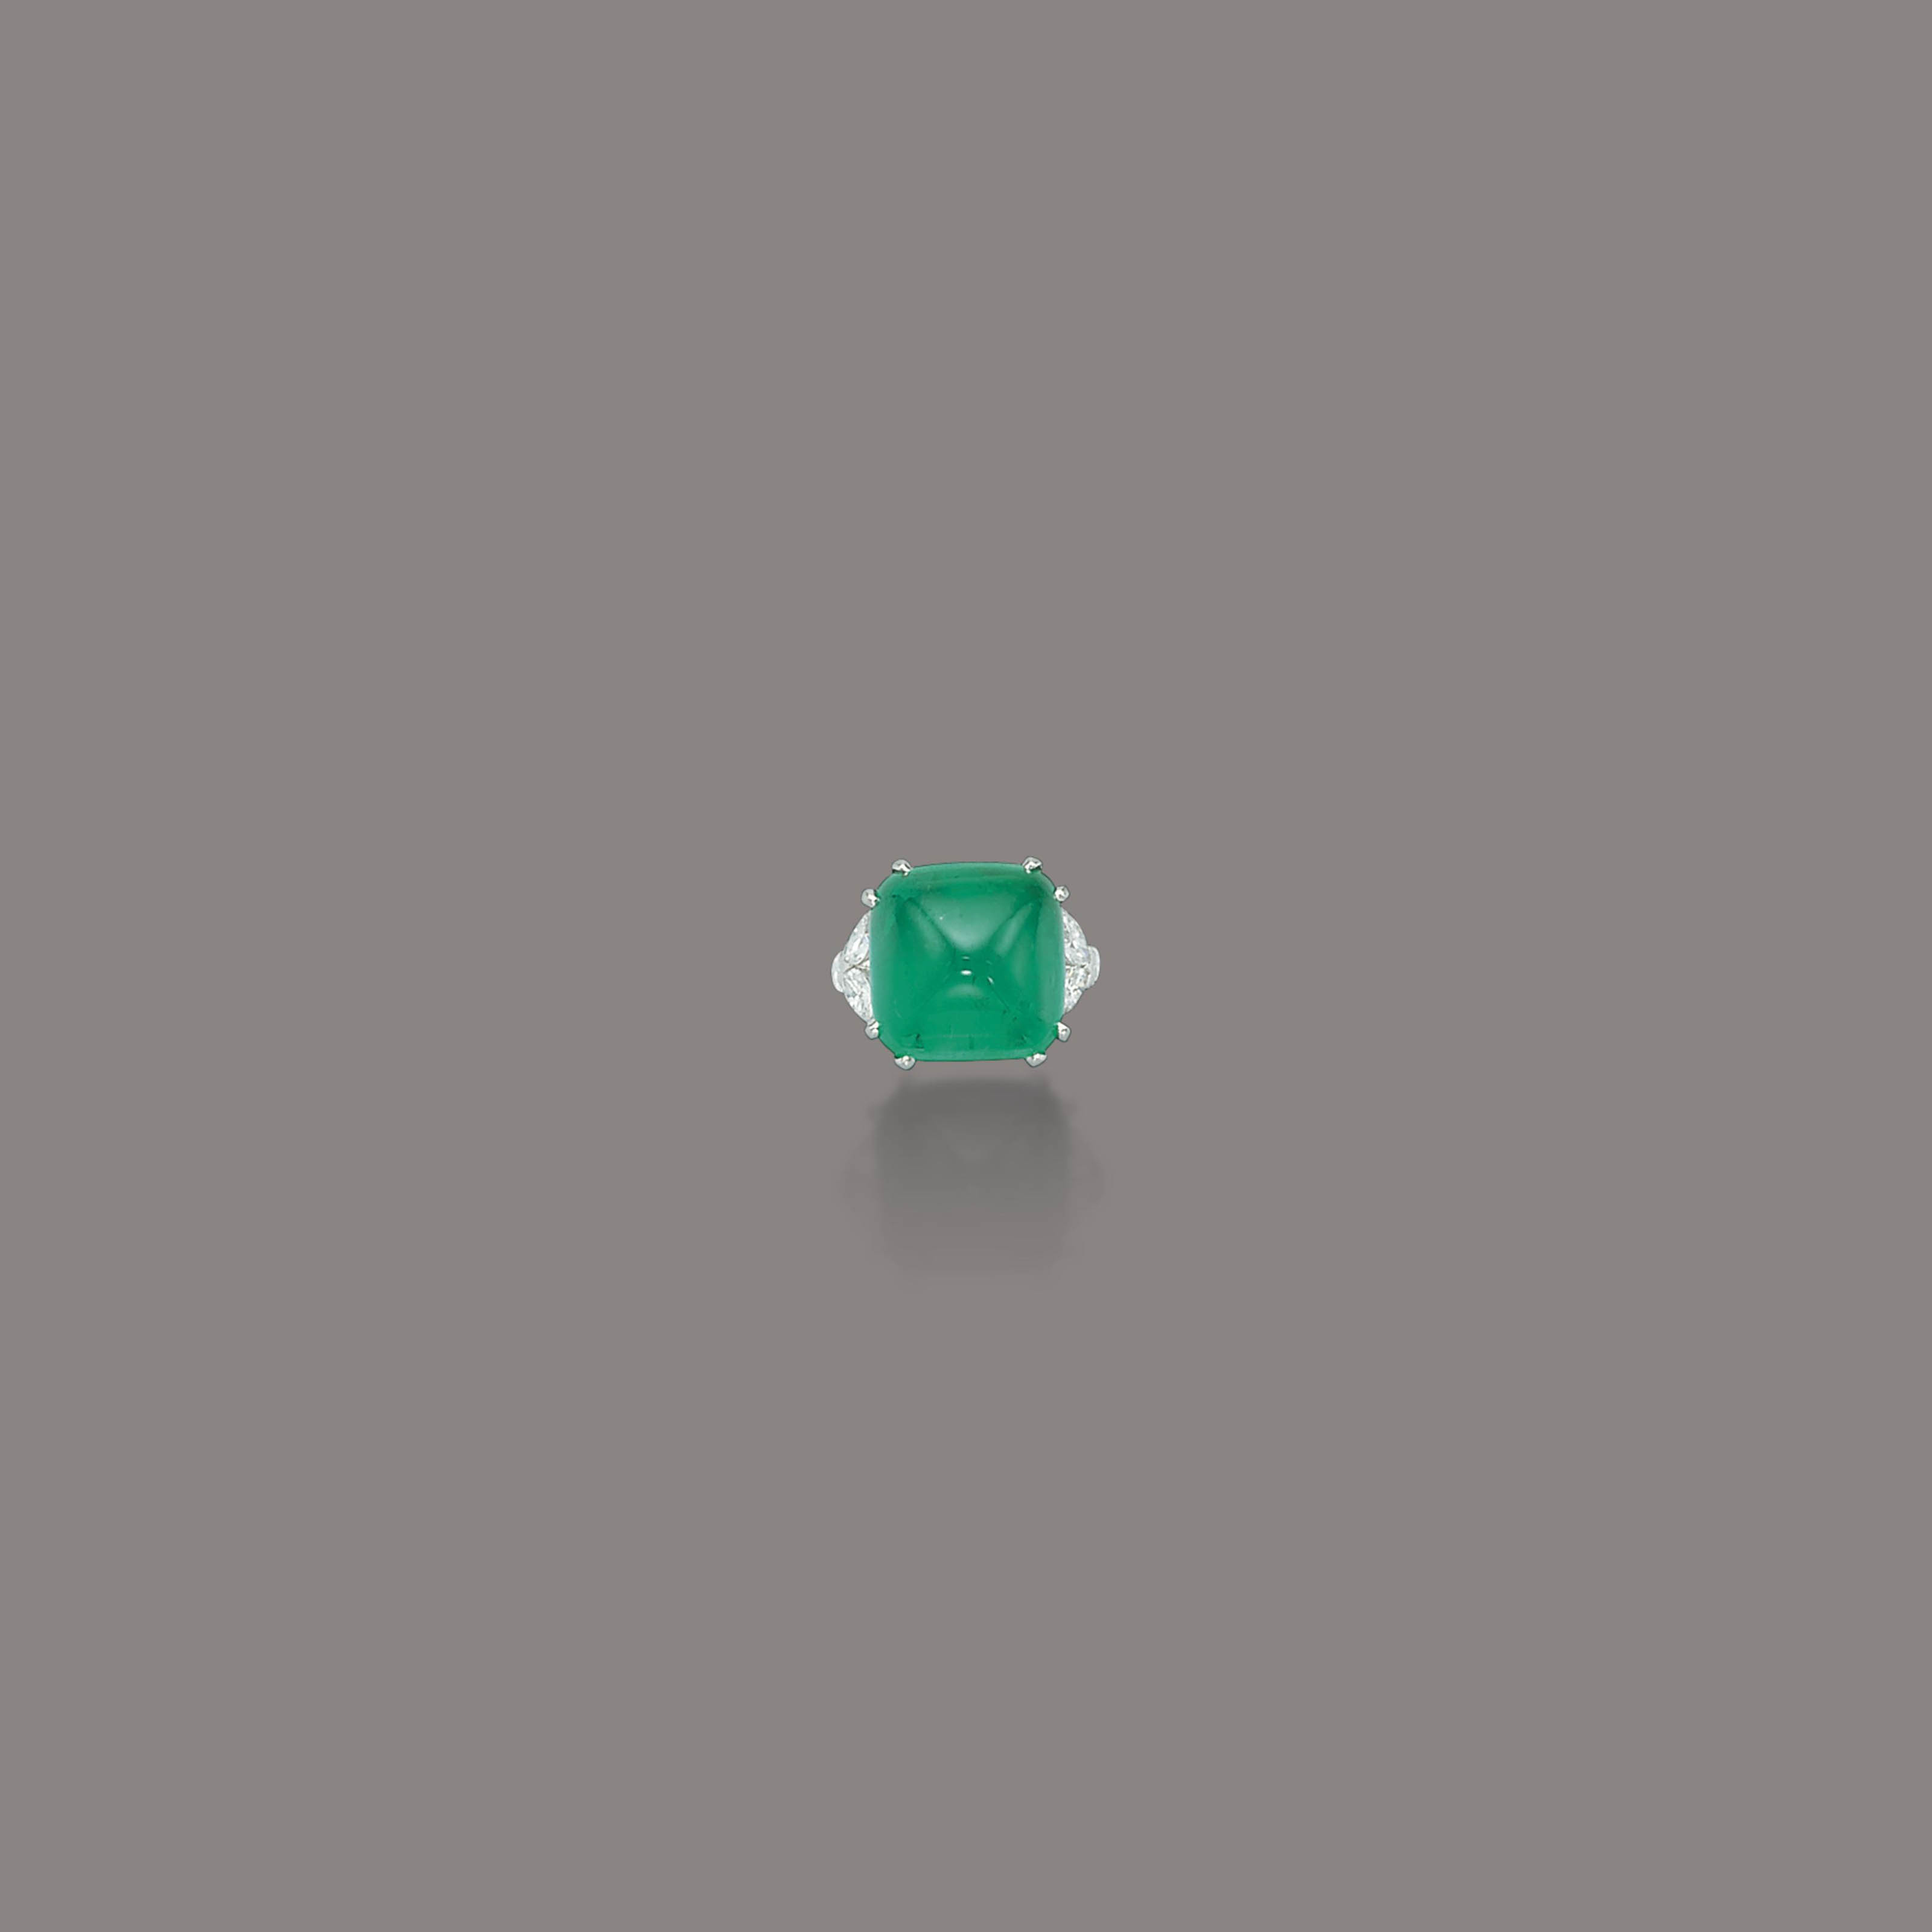 AN EMERALD AND DIAMOND RING, BY RUSER